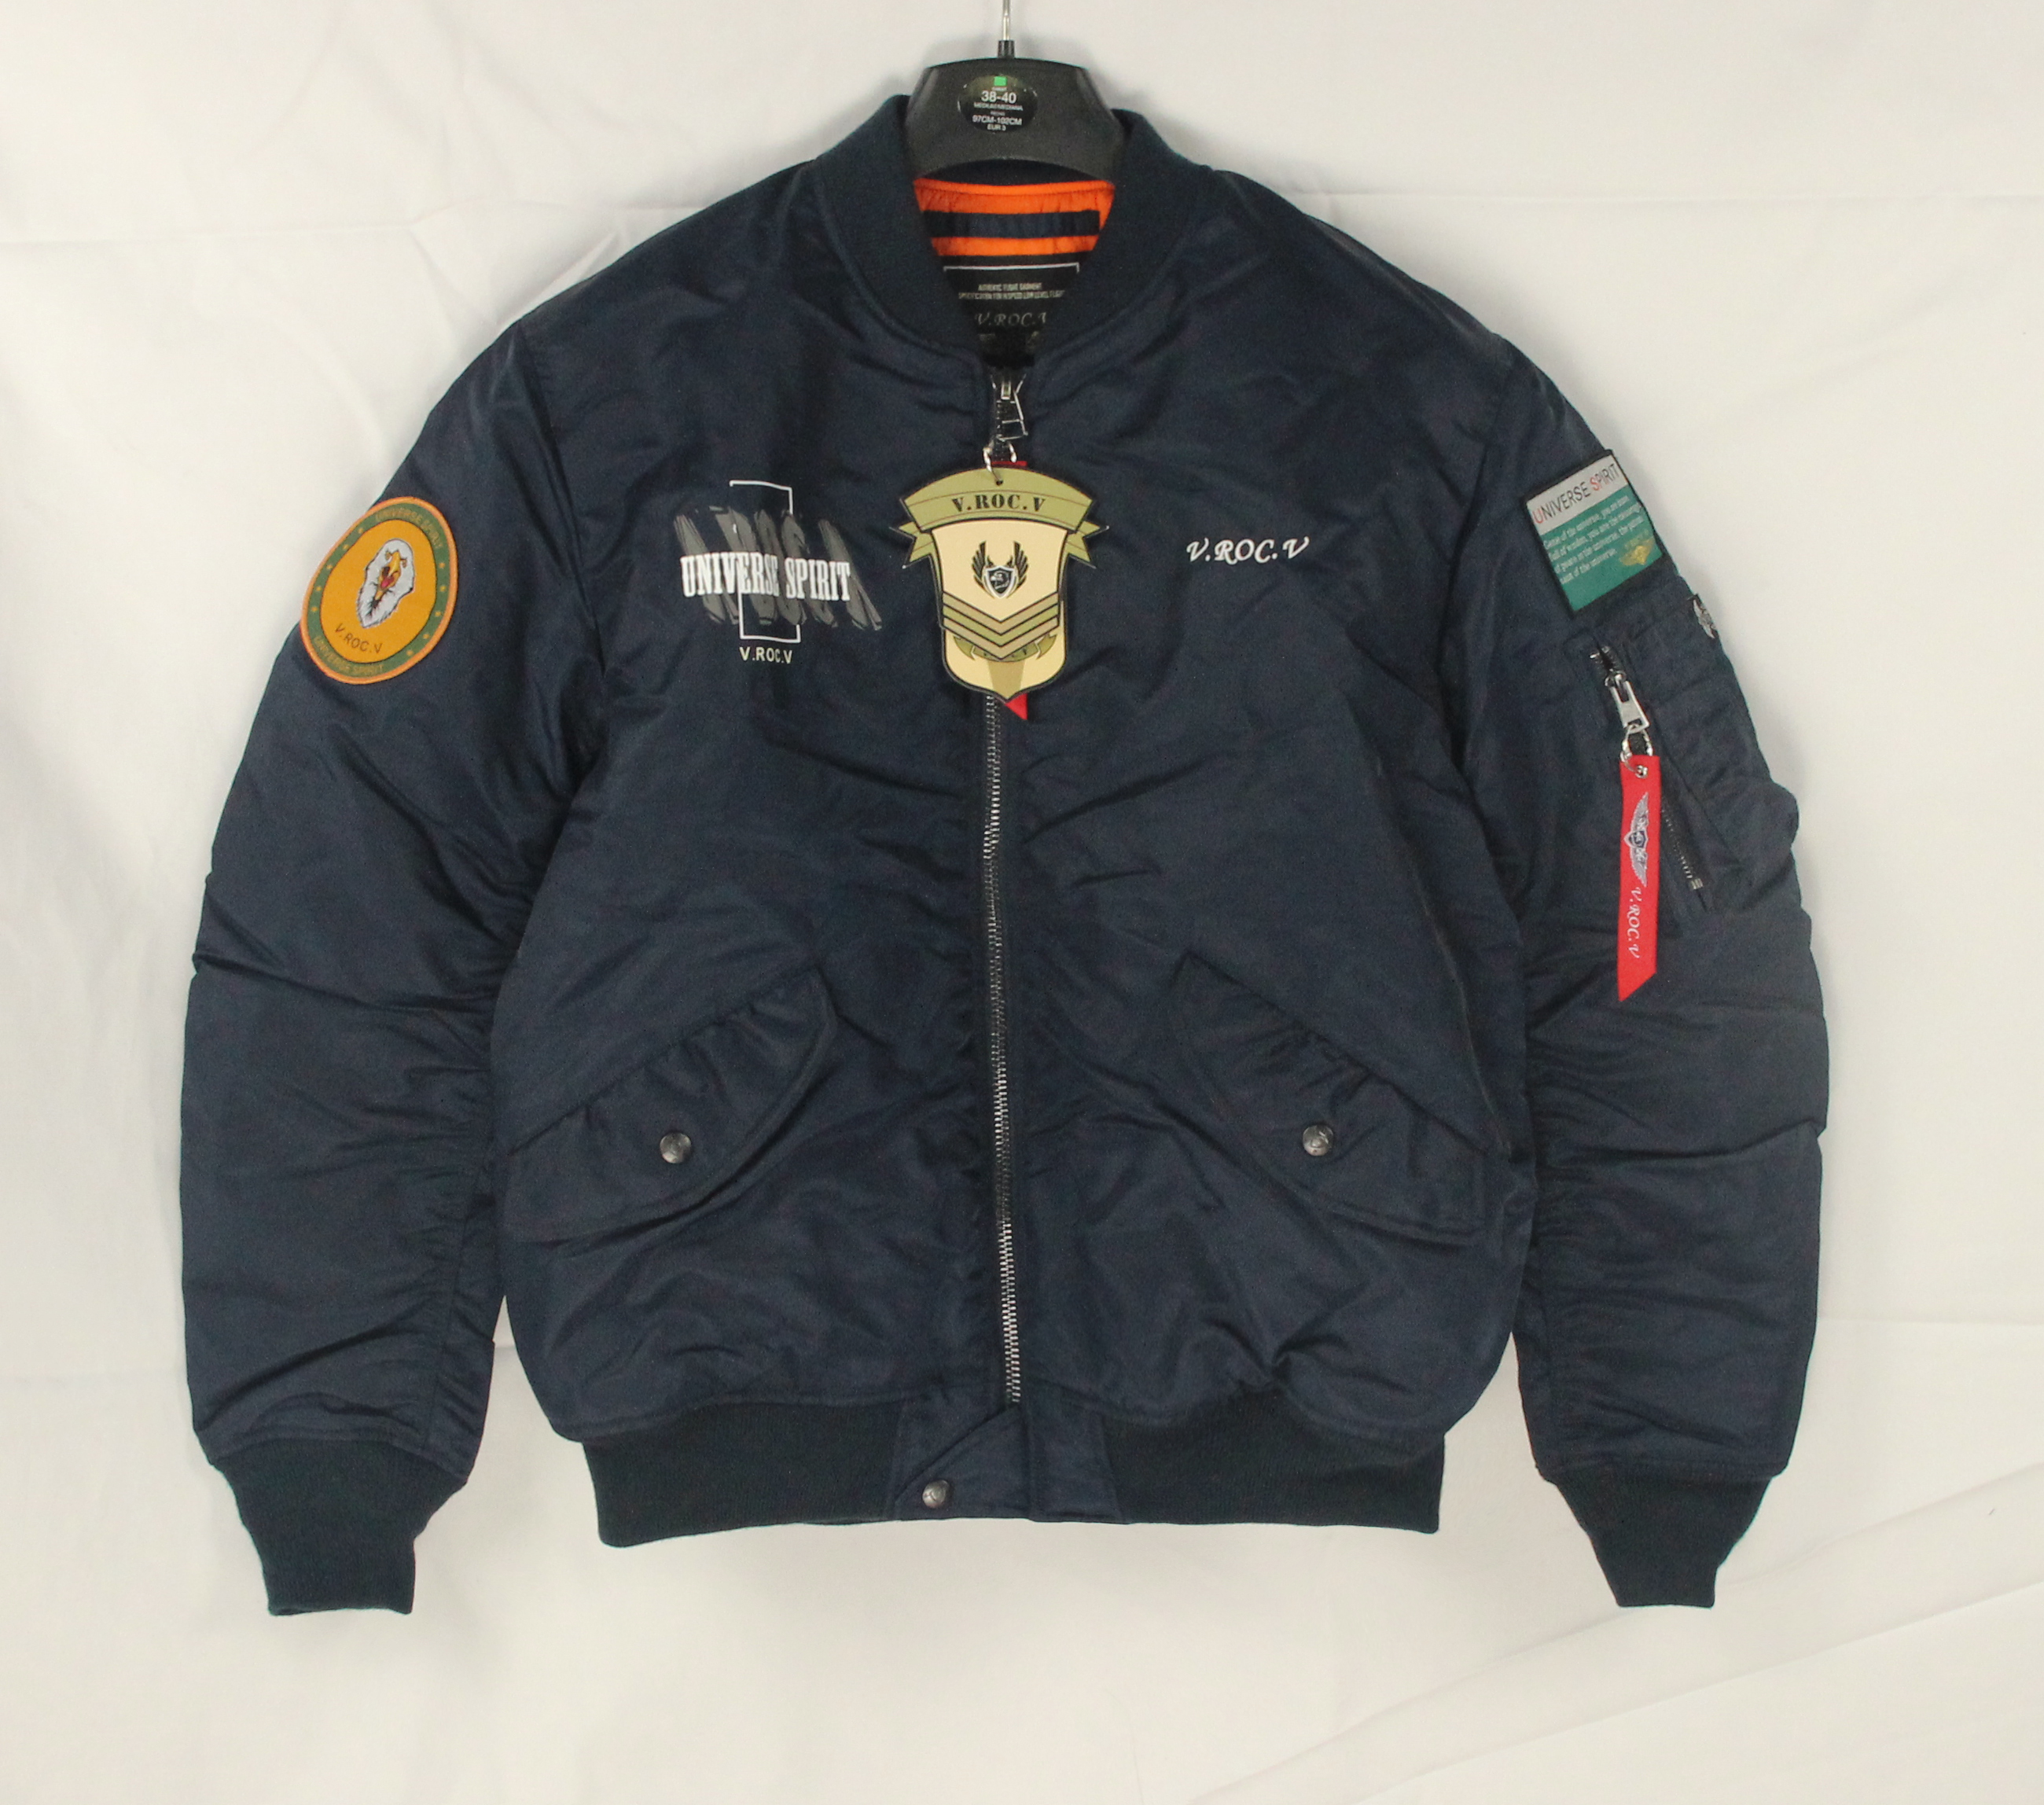 2020 hot sale good supplier V.ROC.V <strong>Mens</strong> <strong>winter</strong> flight <strong>jacket</strong>